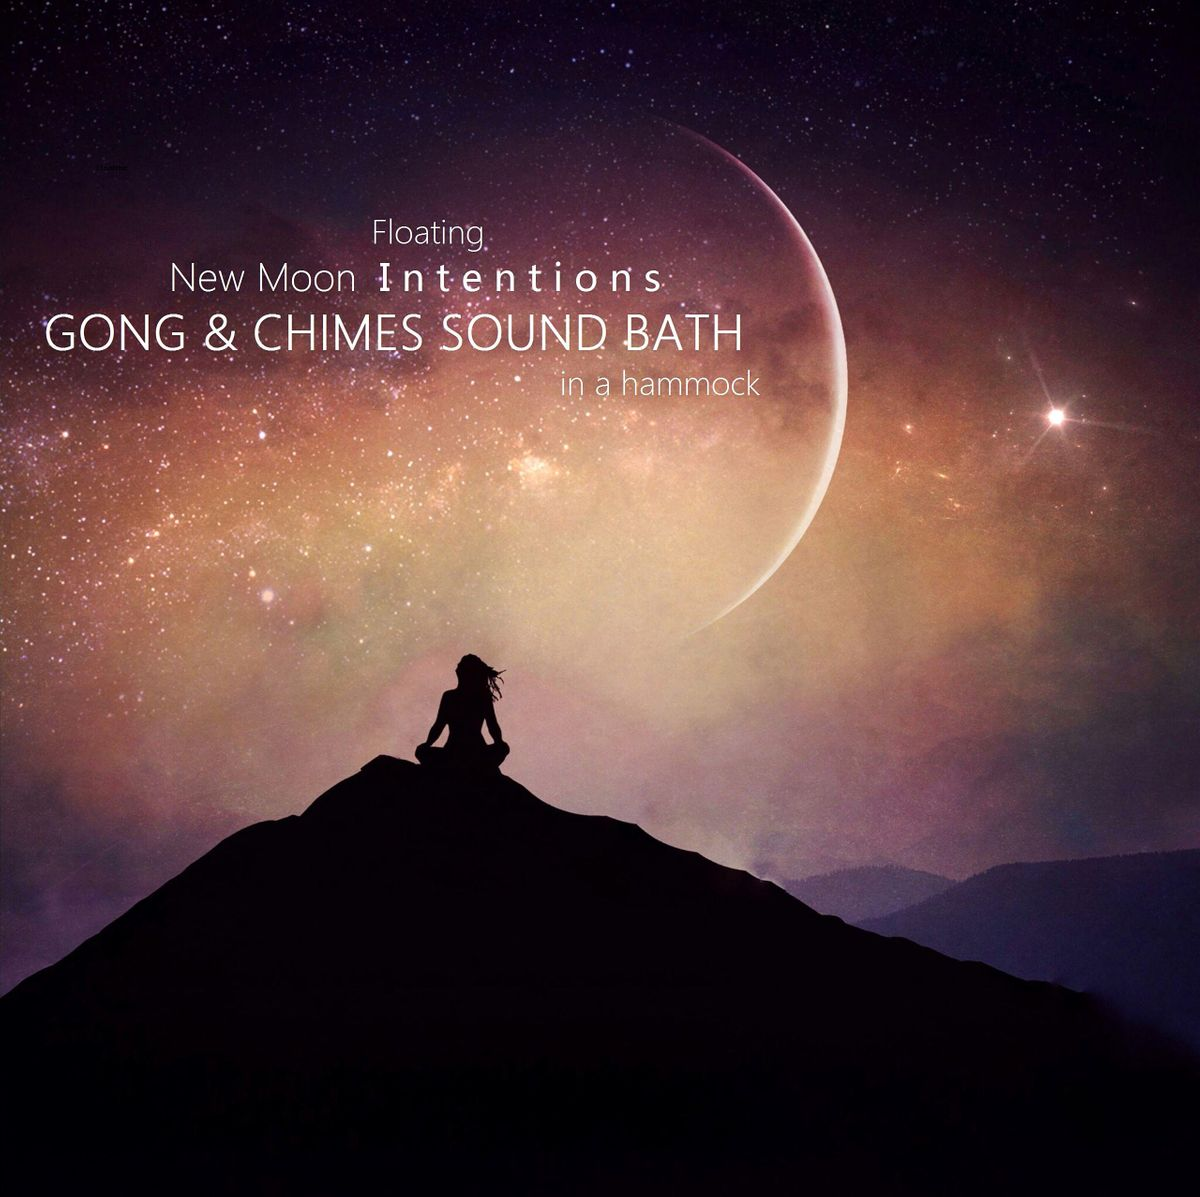 Floating New Moon Intentions GONG & CHIMES SOUND BATH in a hammock